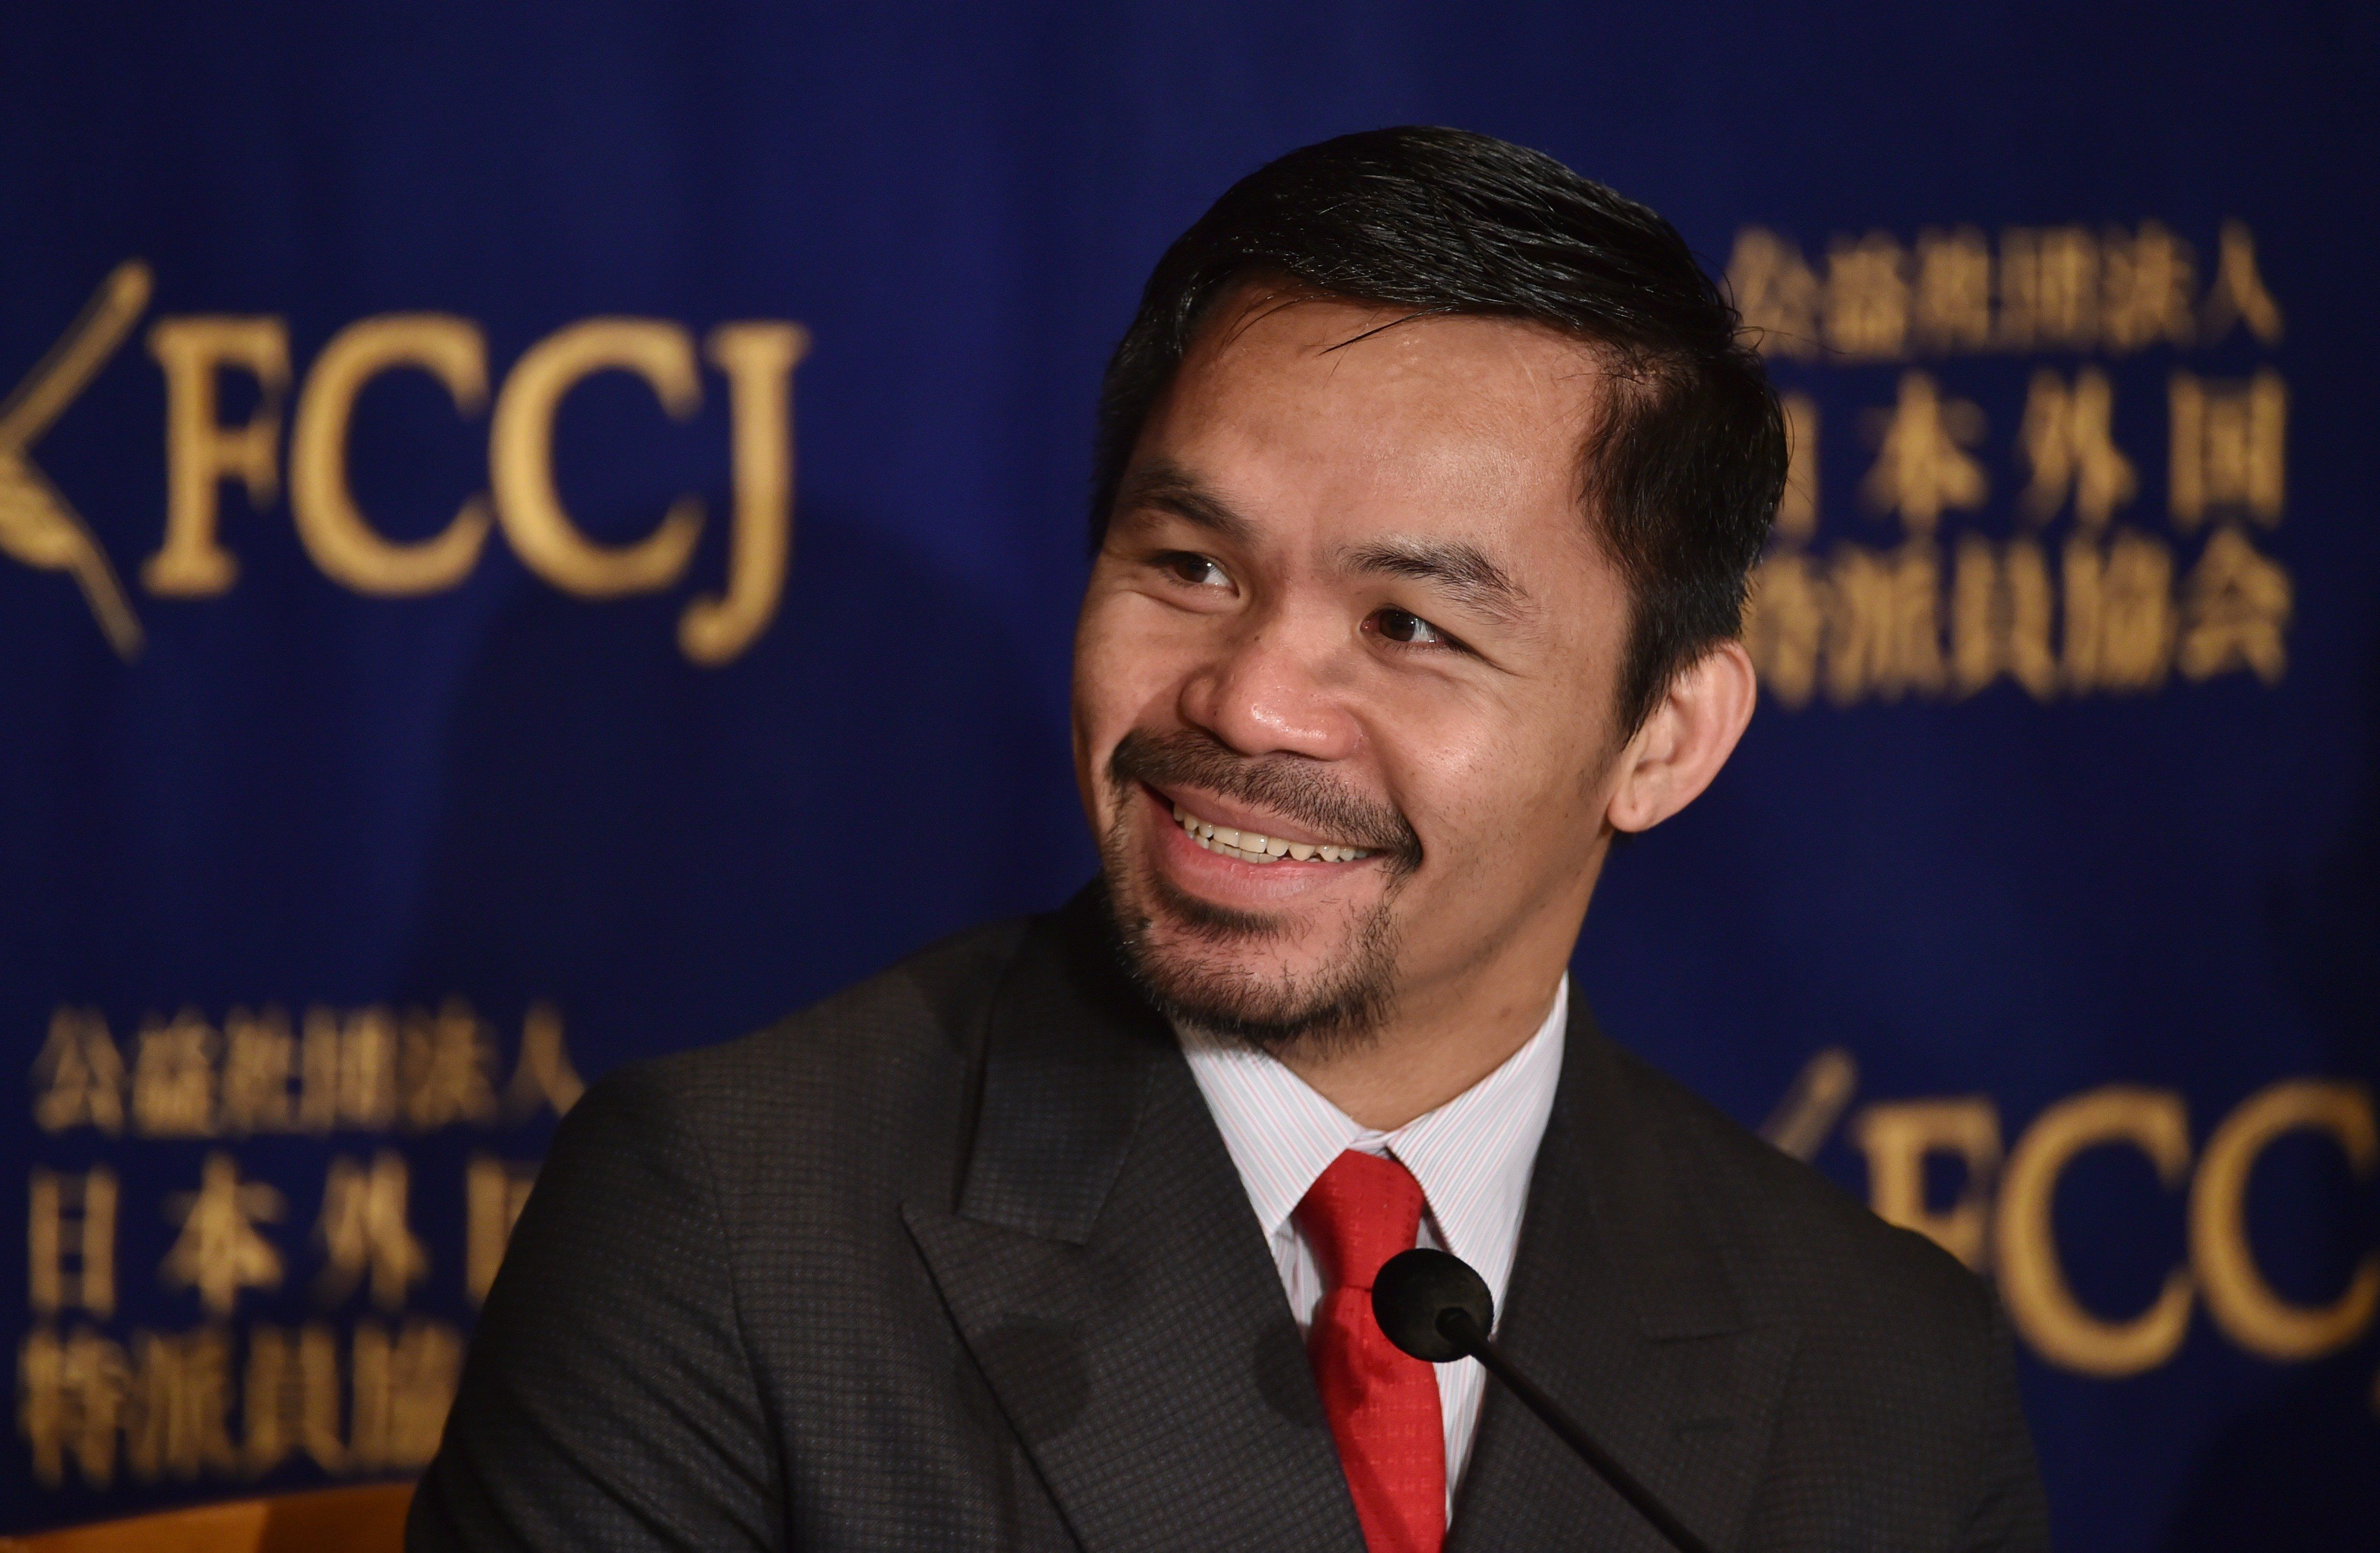 WBO welterweight world champion Manny Pacquiao answers questions during a press conference at the Foreign Correspondents' Club of Japan prior to his press conference in Tokyo on November 26, 2016.  Pacquiao is in Japan to launch his first fitness gym 'PACQUIAO GYM TOKYO JAPAN' in Harajuku, Tokyo. / AFP / KAZUHIRO NOGI        (Photo credit should read KAZUHIRO NOGI/AFP/Getty Images)